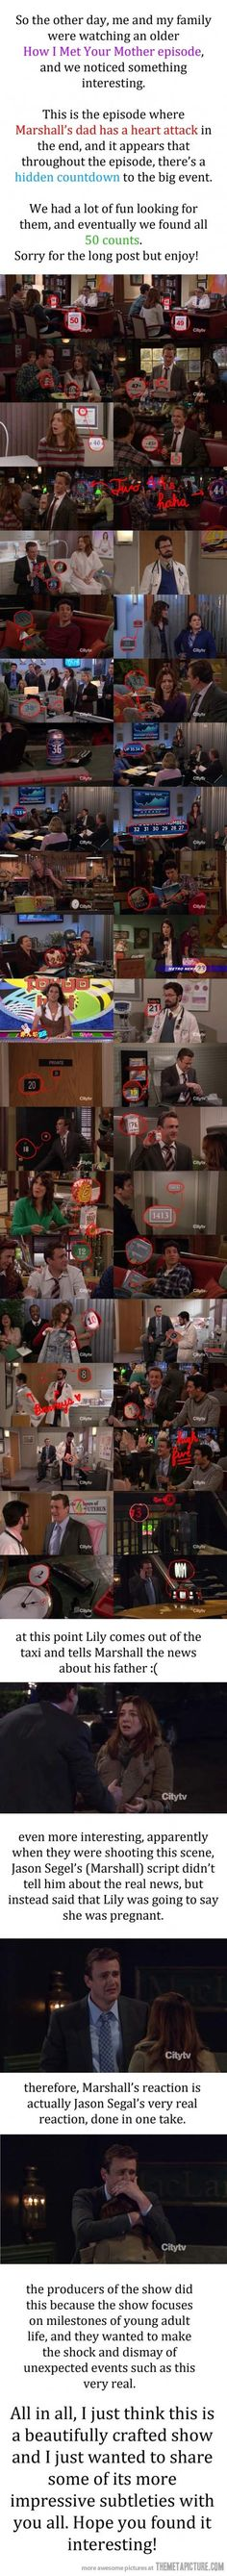 Hidden messages in How I Met Your Mother, I caught the numbers, but didn't know about the reaction